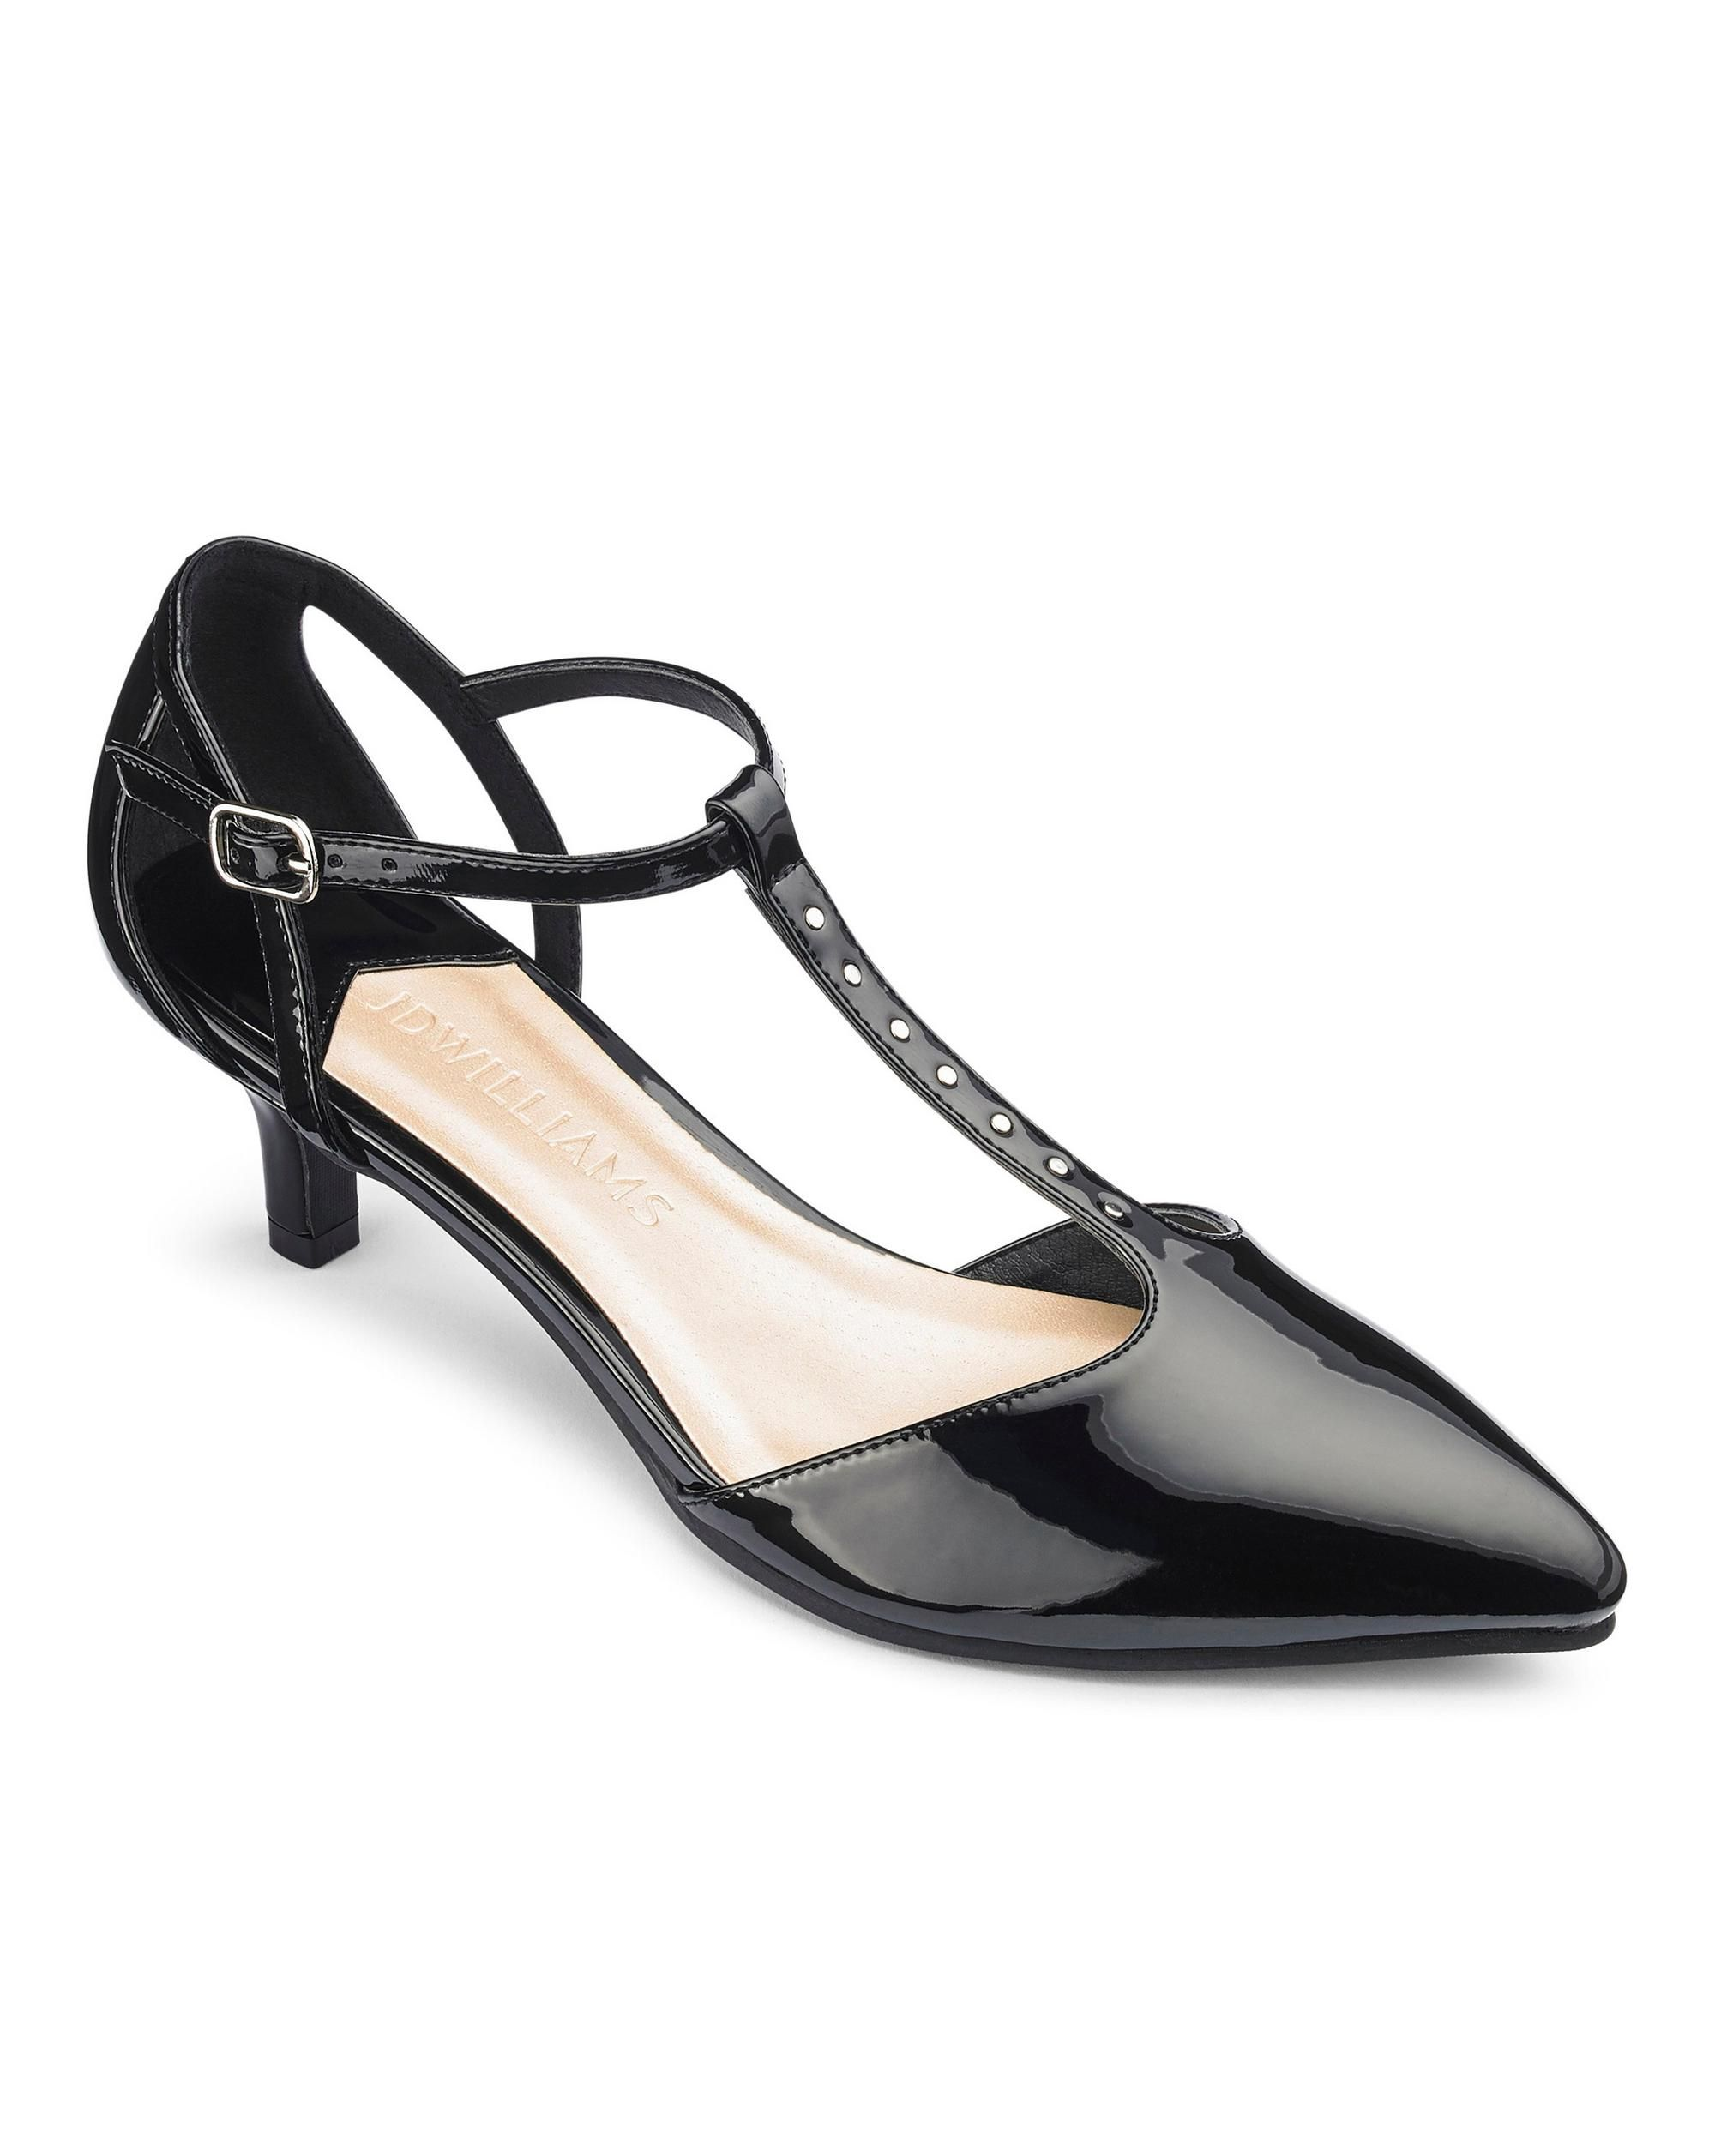 1930s Style Shoes For Women Vintage Style Shoes Vintage Shoes Women Shoes